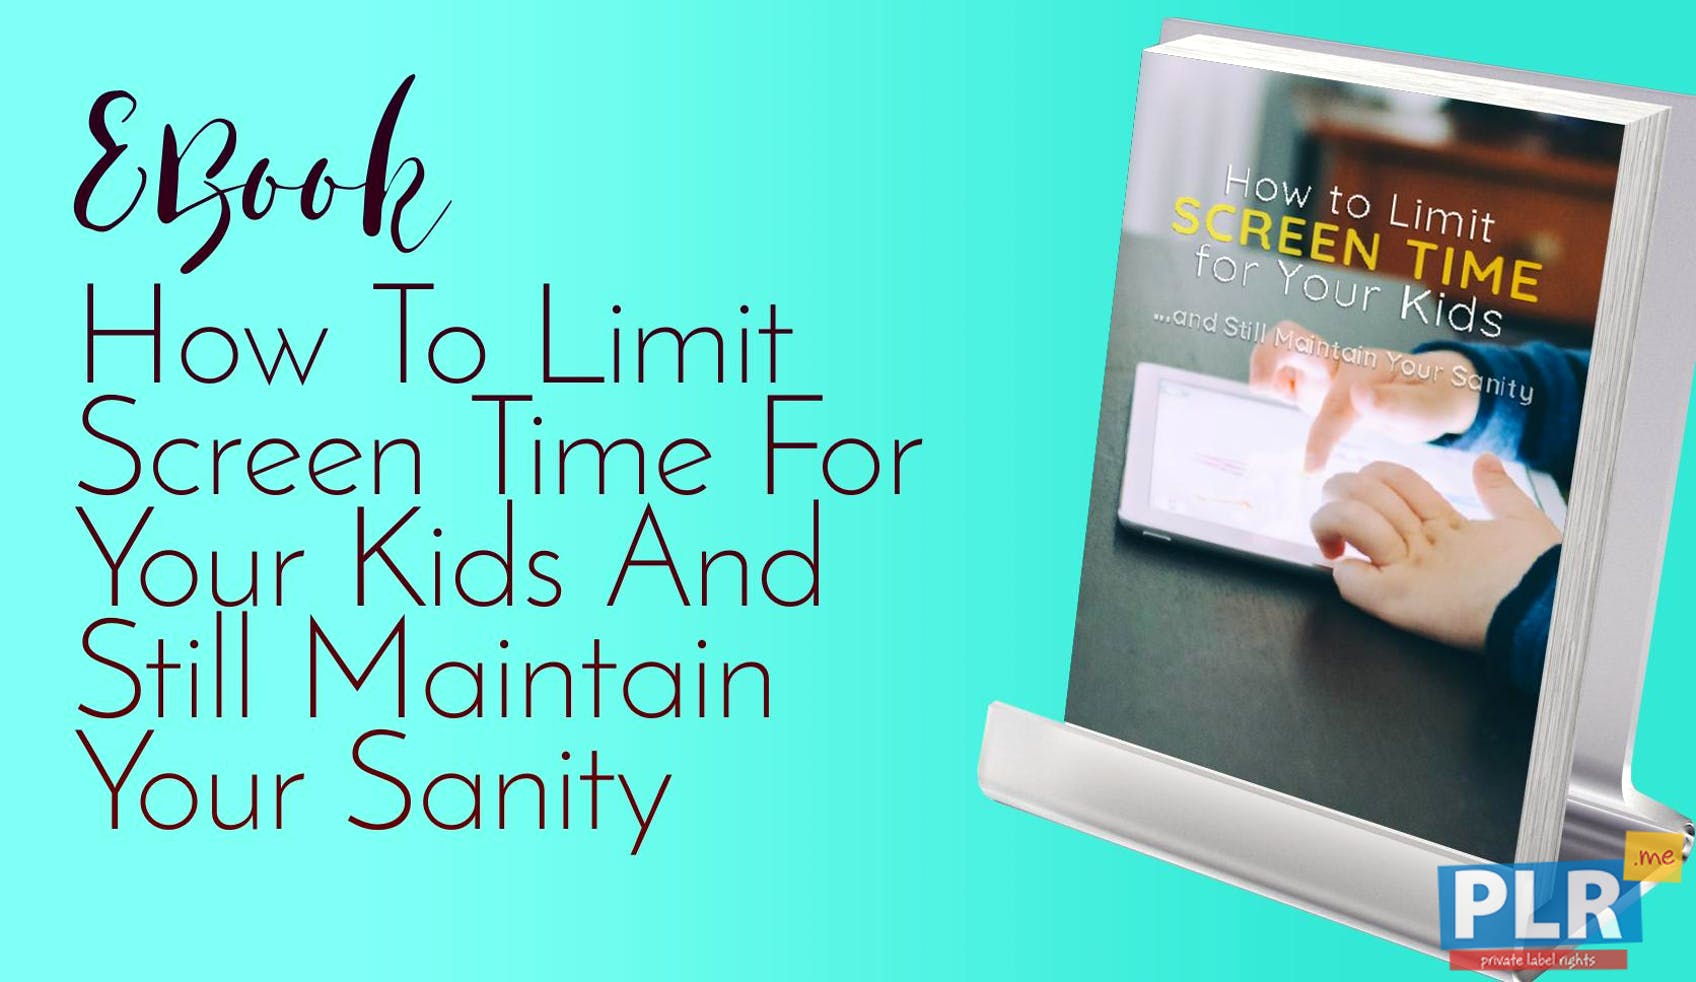 How To Limit Screen Time For Your Kids And Still Maintain Your Sanity